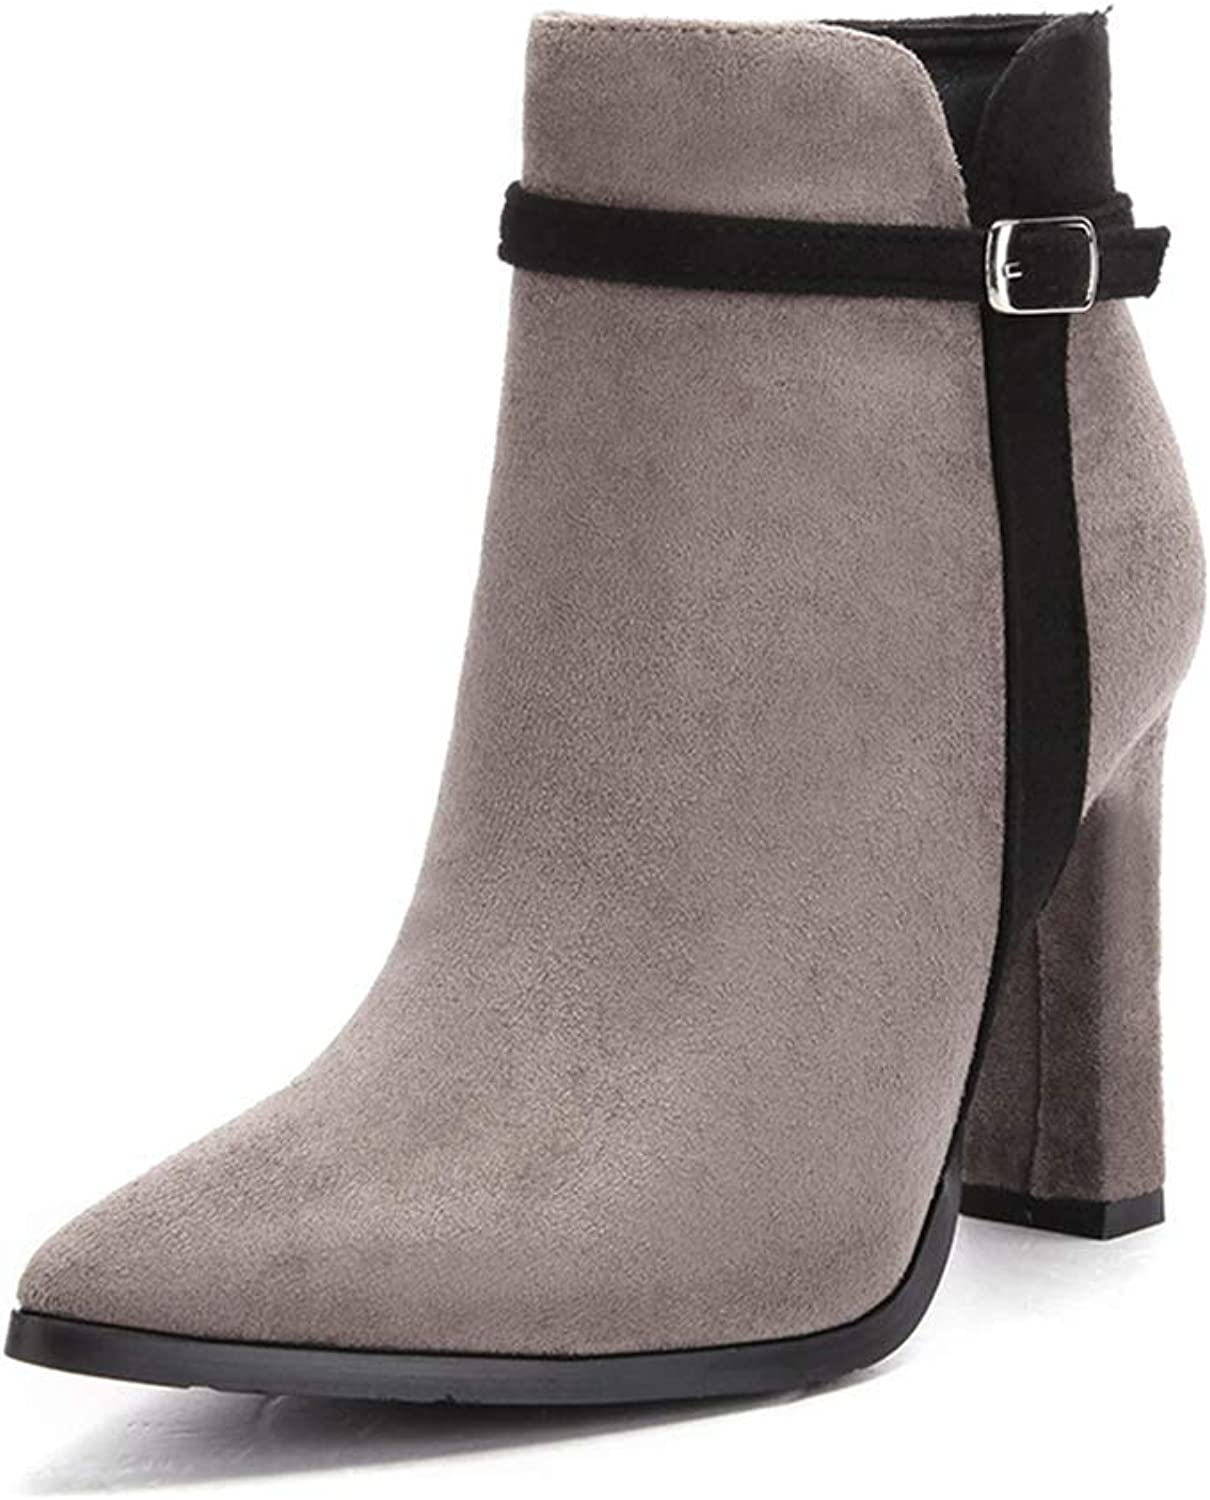 Super frist Fashion Wild Female Booties Pointed Thick with high Heel Side Zipper Belt Buckle